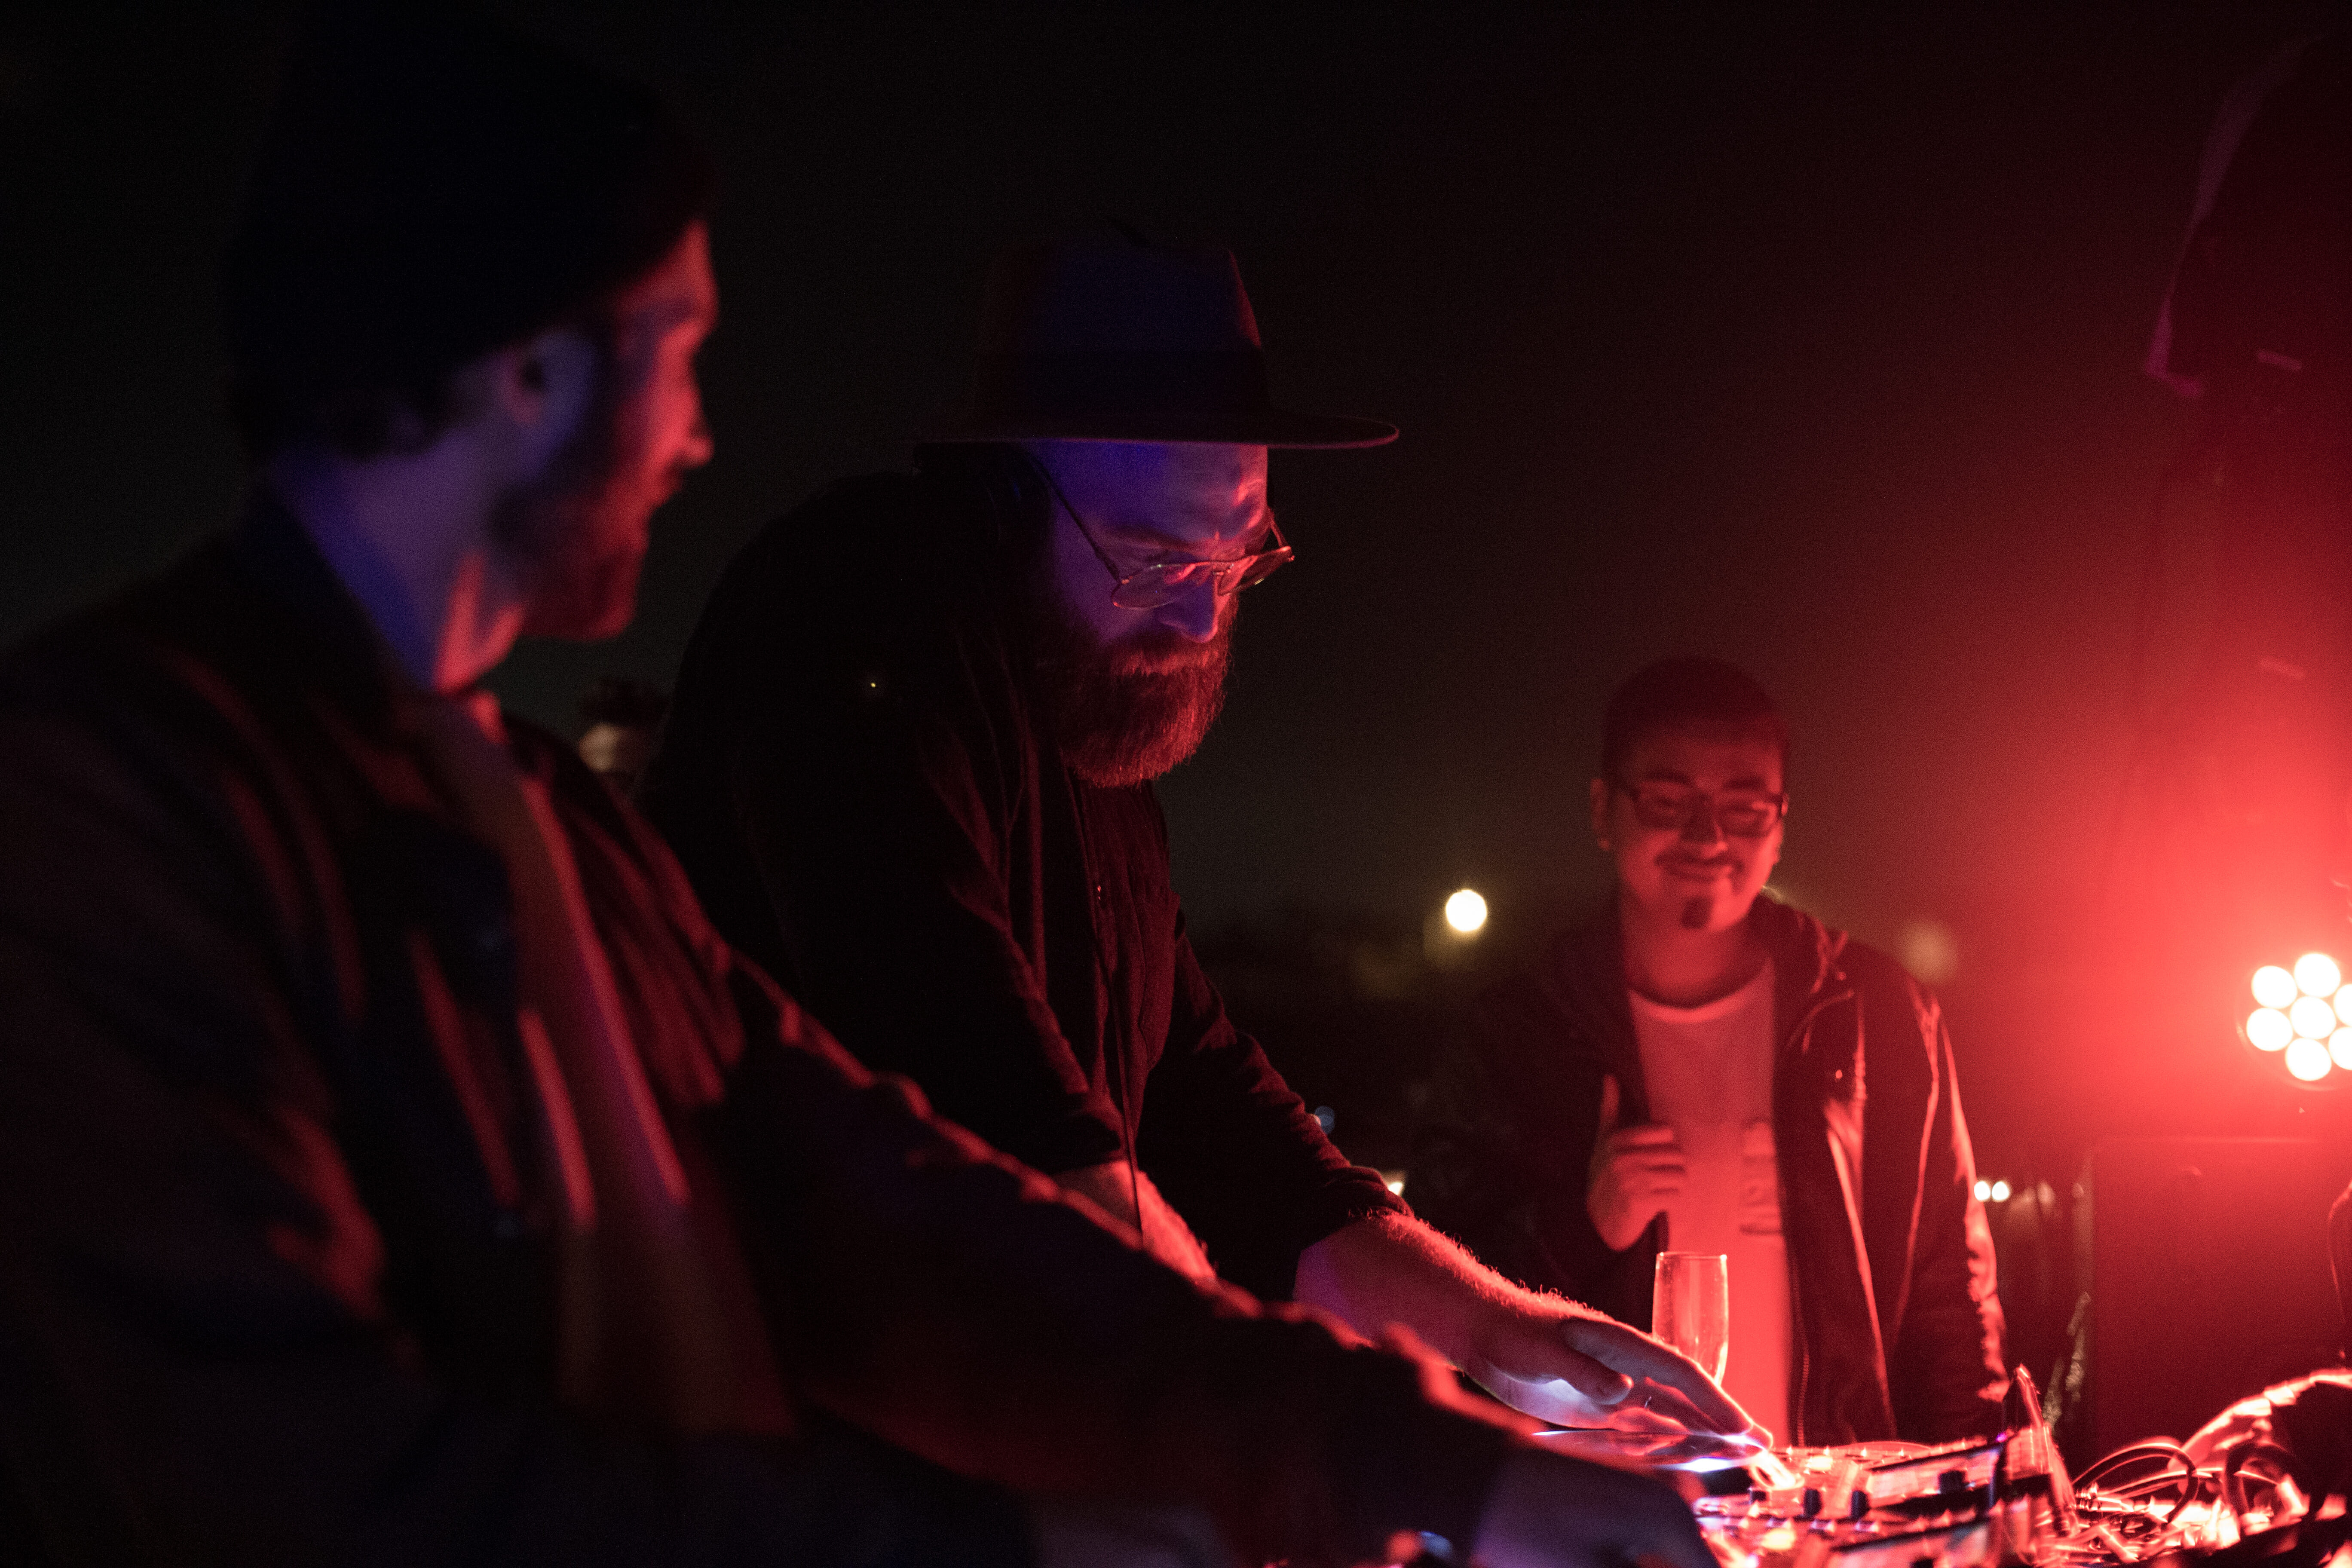 Andhim on becoming turntablists, taco champions, and 'superheroes' [Interview]Ah 9